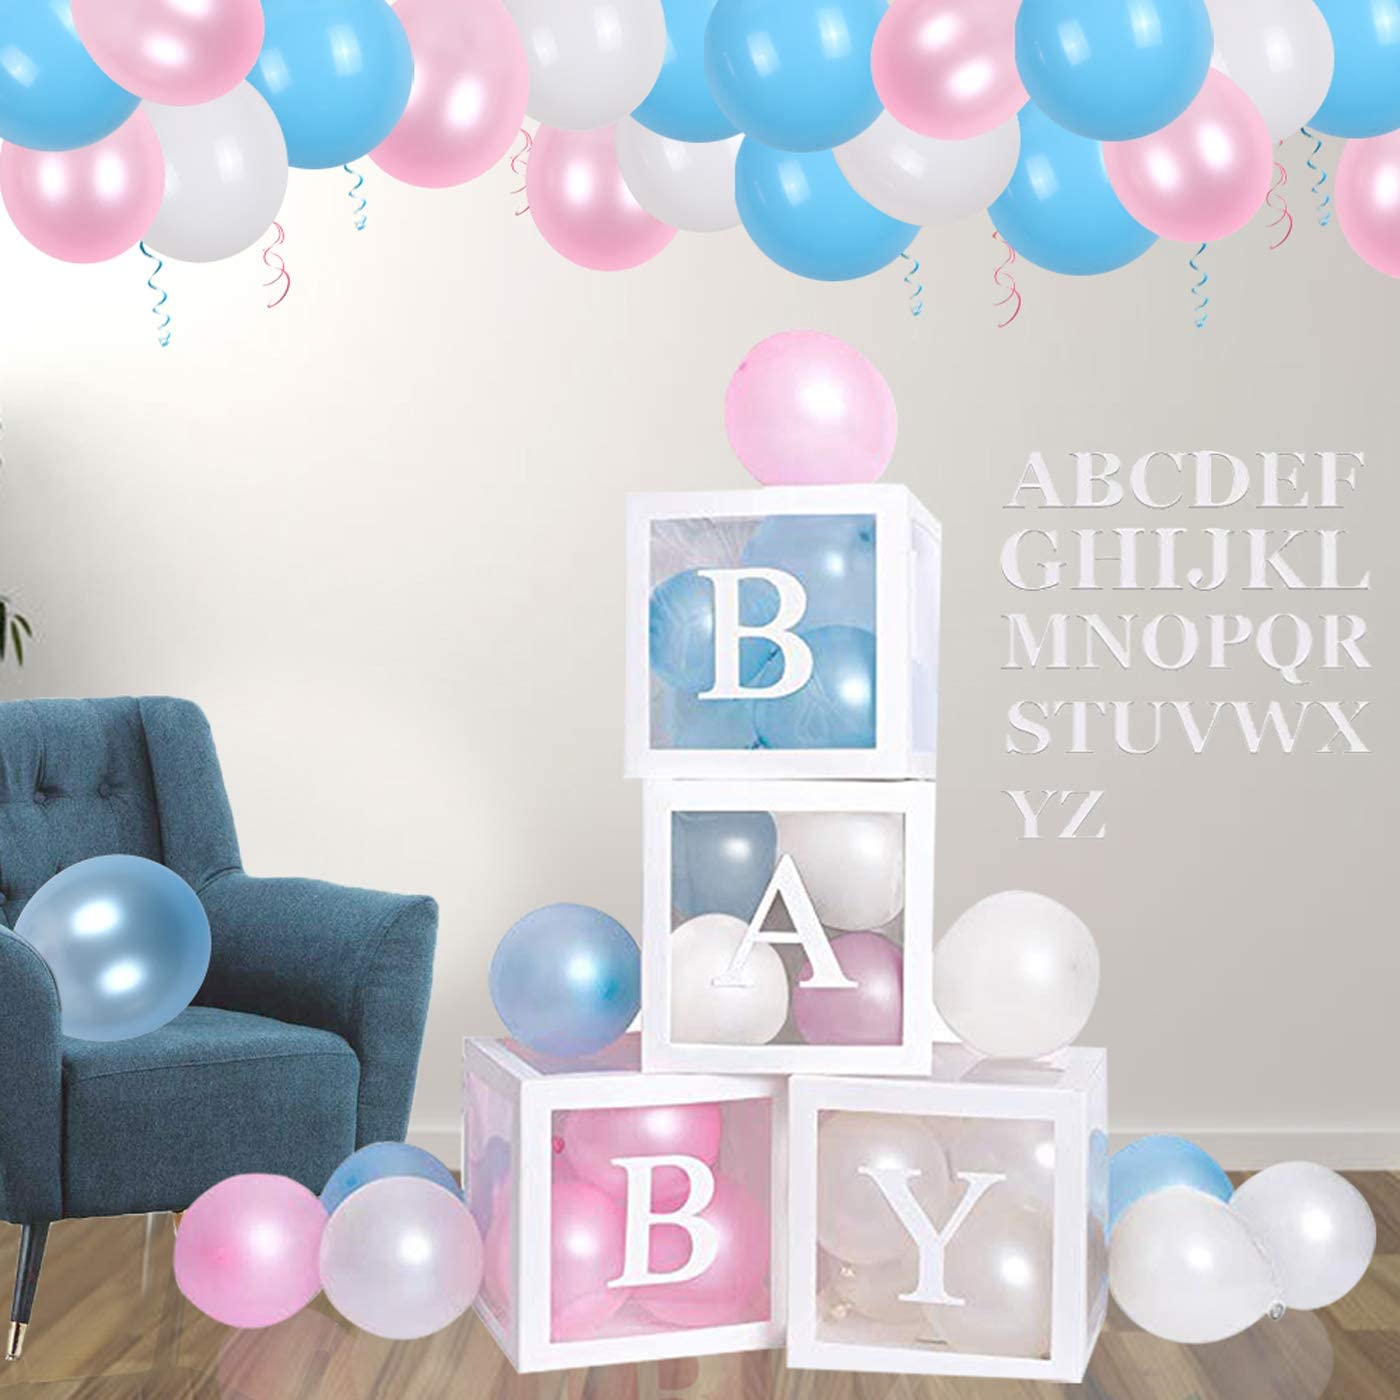 First Birthday Centerpiece Decor /& Supplies for Boys and Girls 40 pcs 4 Letters Baby Shower Boxes Party Decorations 32 Colorful Macarone Balloons,4 Transparent Blocks Gender Reveal Backdrop